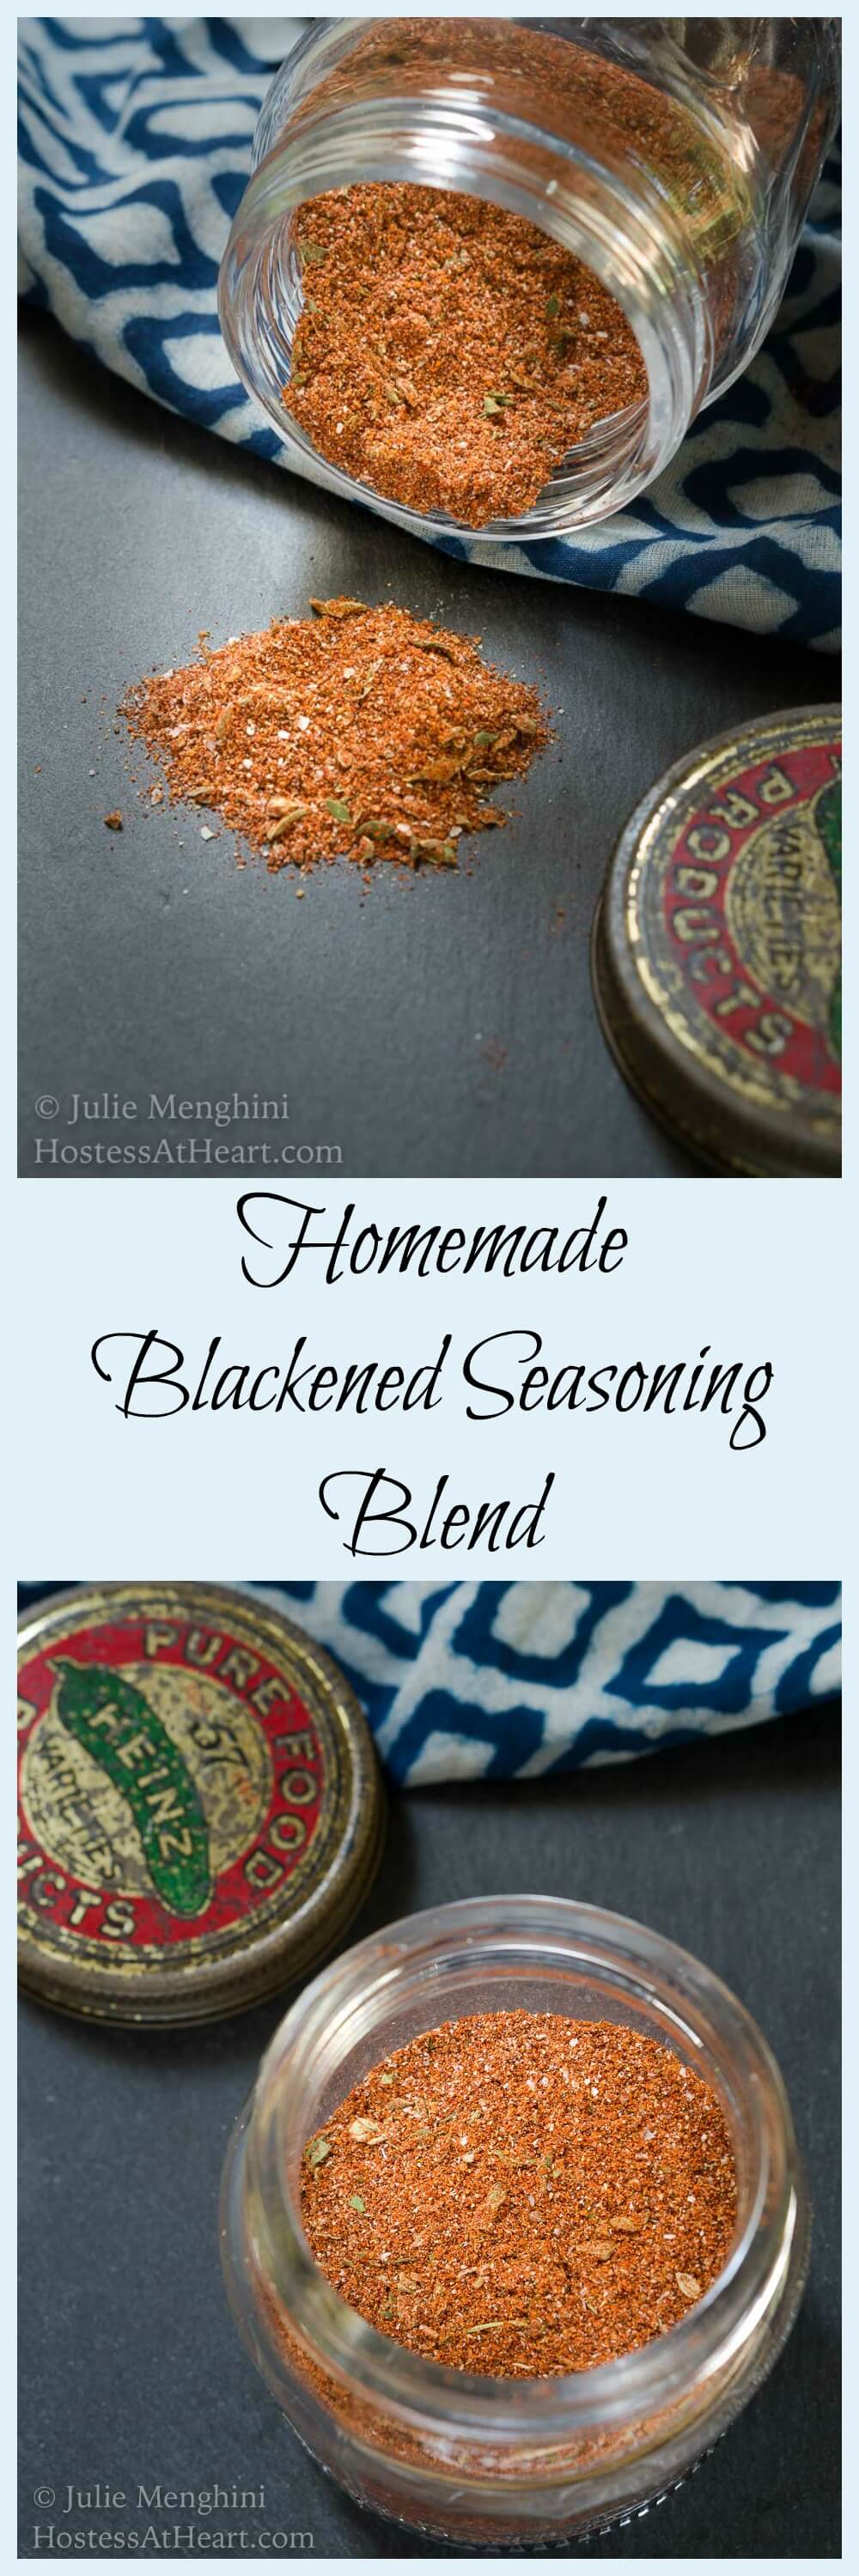 This Homemade Blackened Seasoning Blend #recipe bumps up the flavor of any meat or veggie dish.  It's got a great flavor followed by a bit of a kick. HostessAtHeart.com